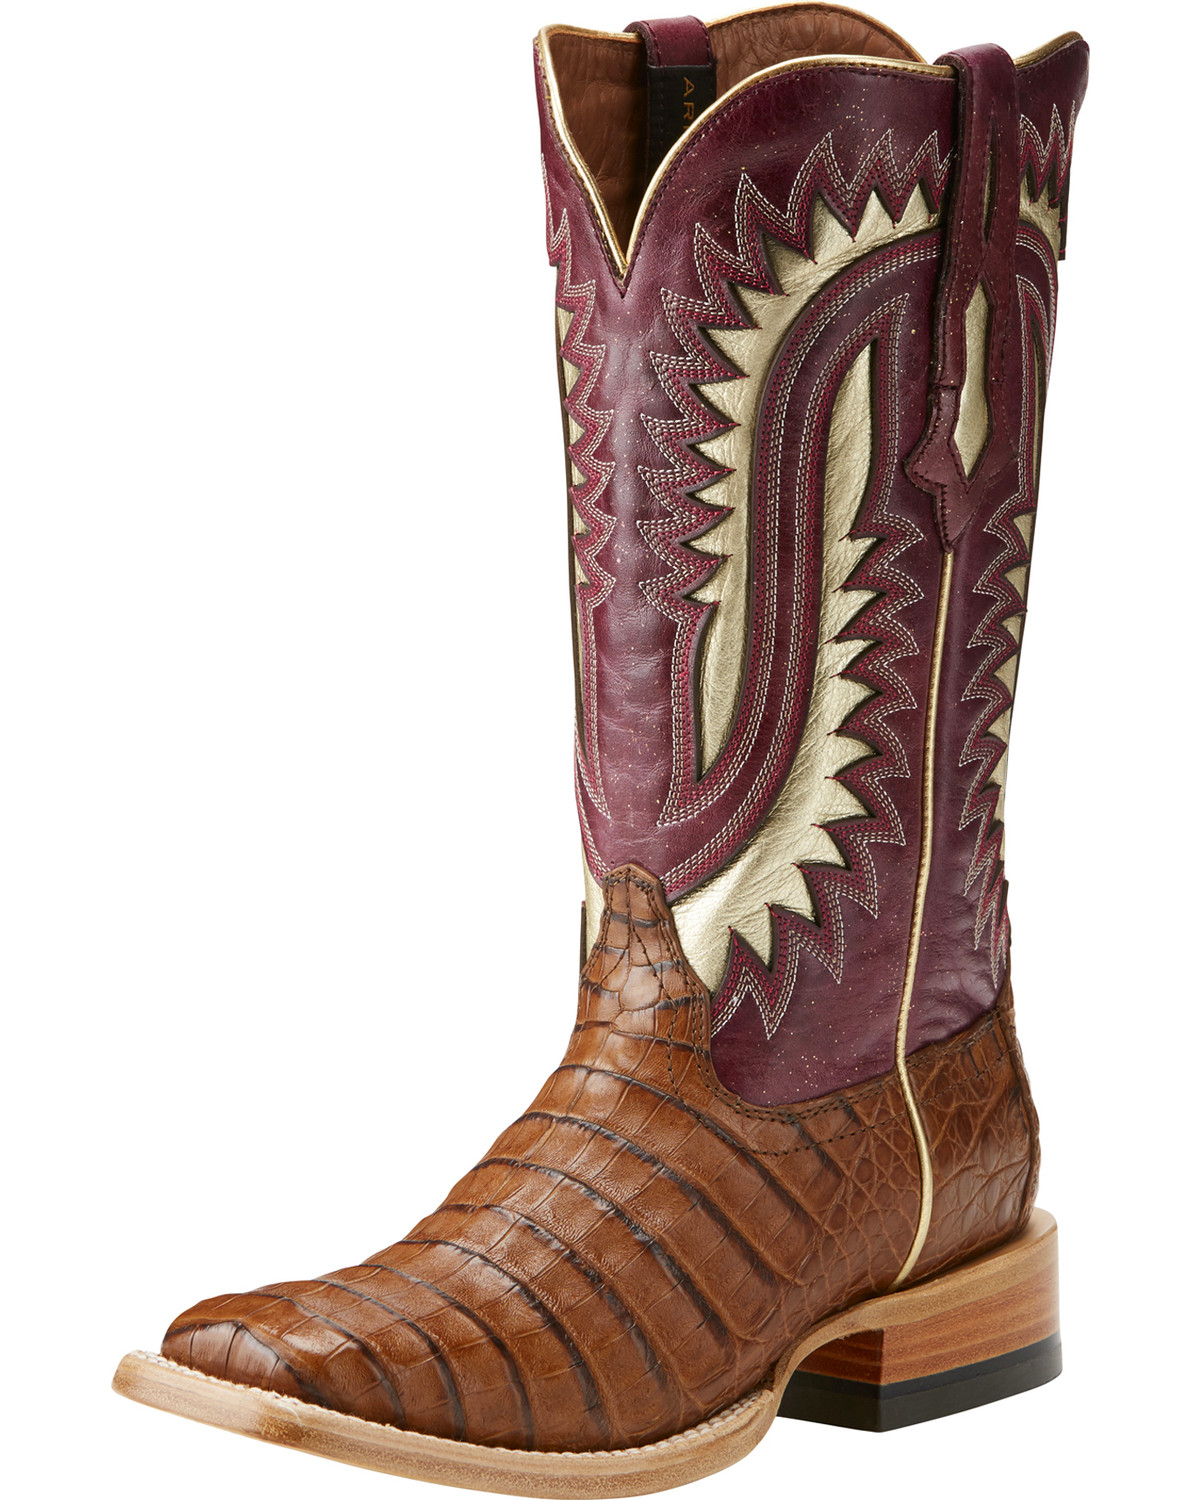 8d8e680a7e8 Ariat Women's Silverado Brown Caiman Cowgirl Boots - Square Toe